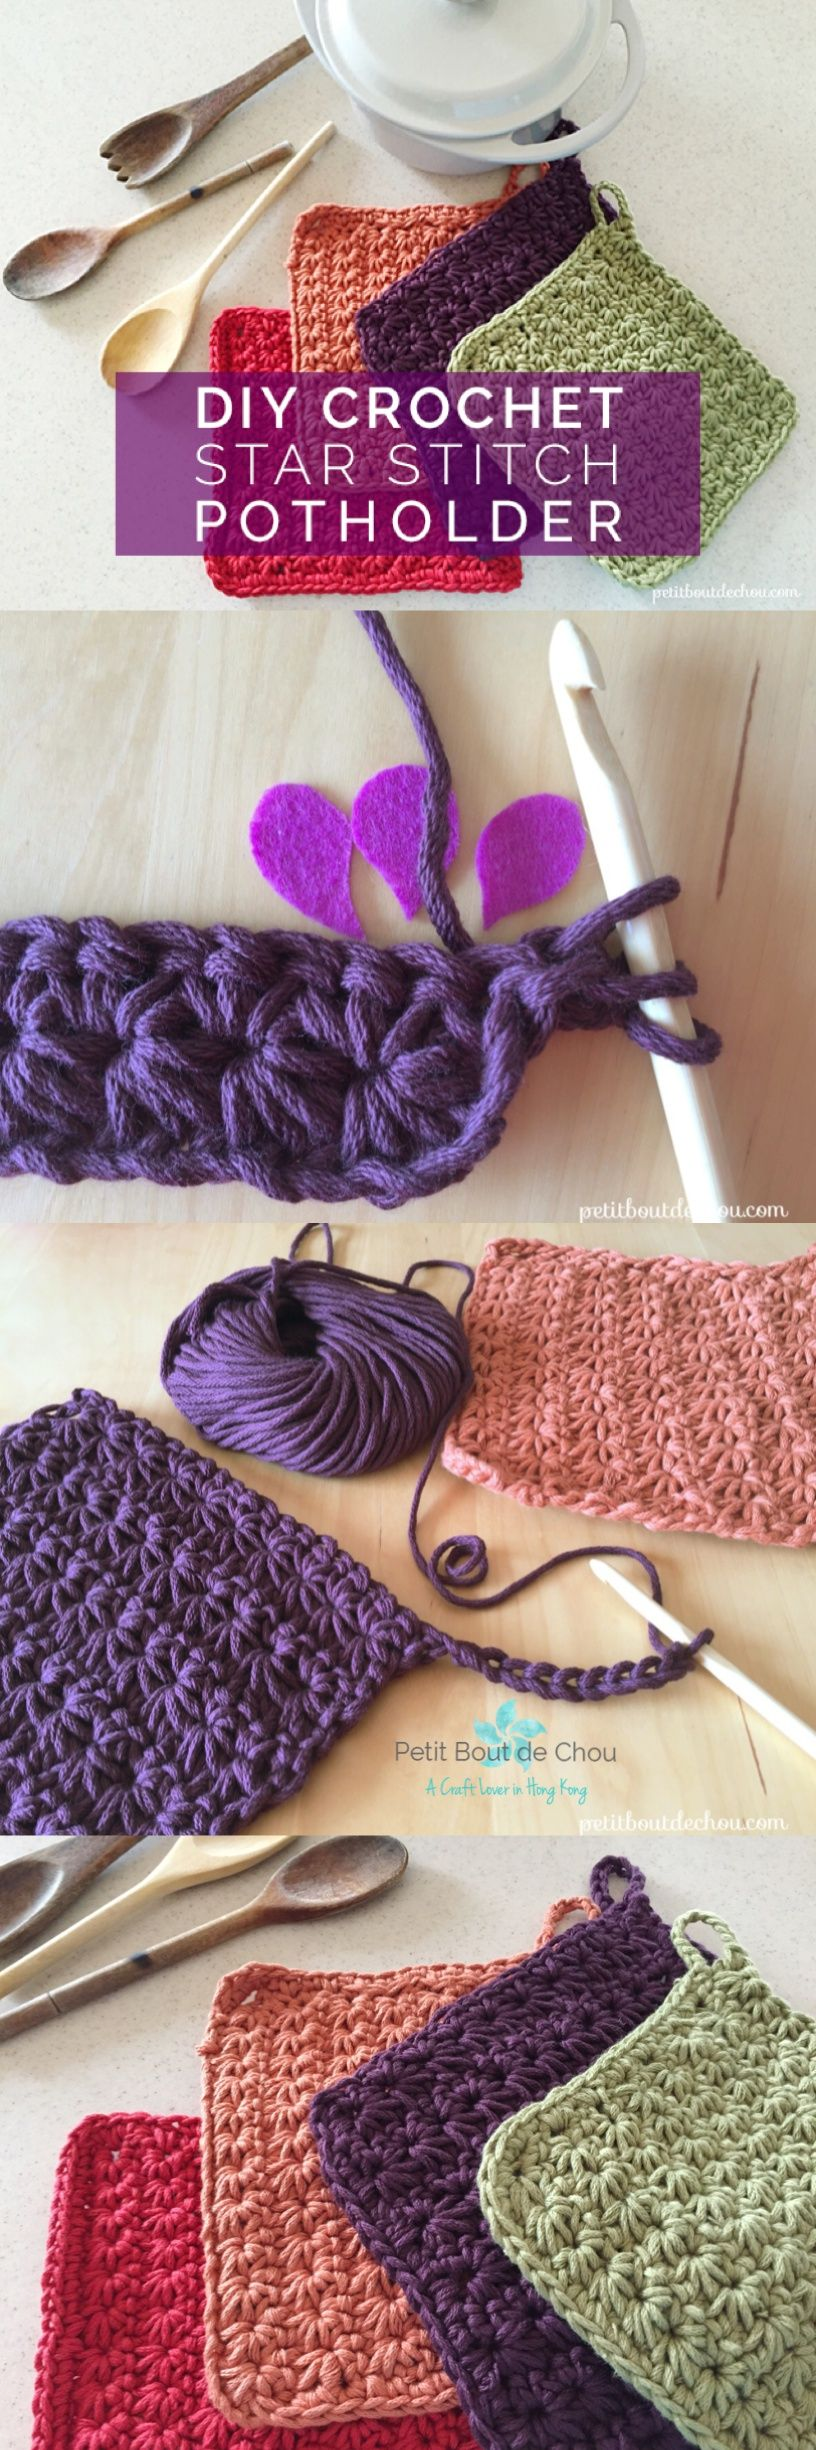 12 things every beginner crocheter needs to know page 15 of 15 learn the beautiful crochet star stitch by making theseis is a fantastic tutorial useful and pretty autumnal potholders for your kitchen a great step bankloansurffo Image collections